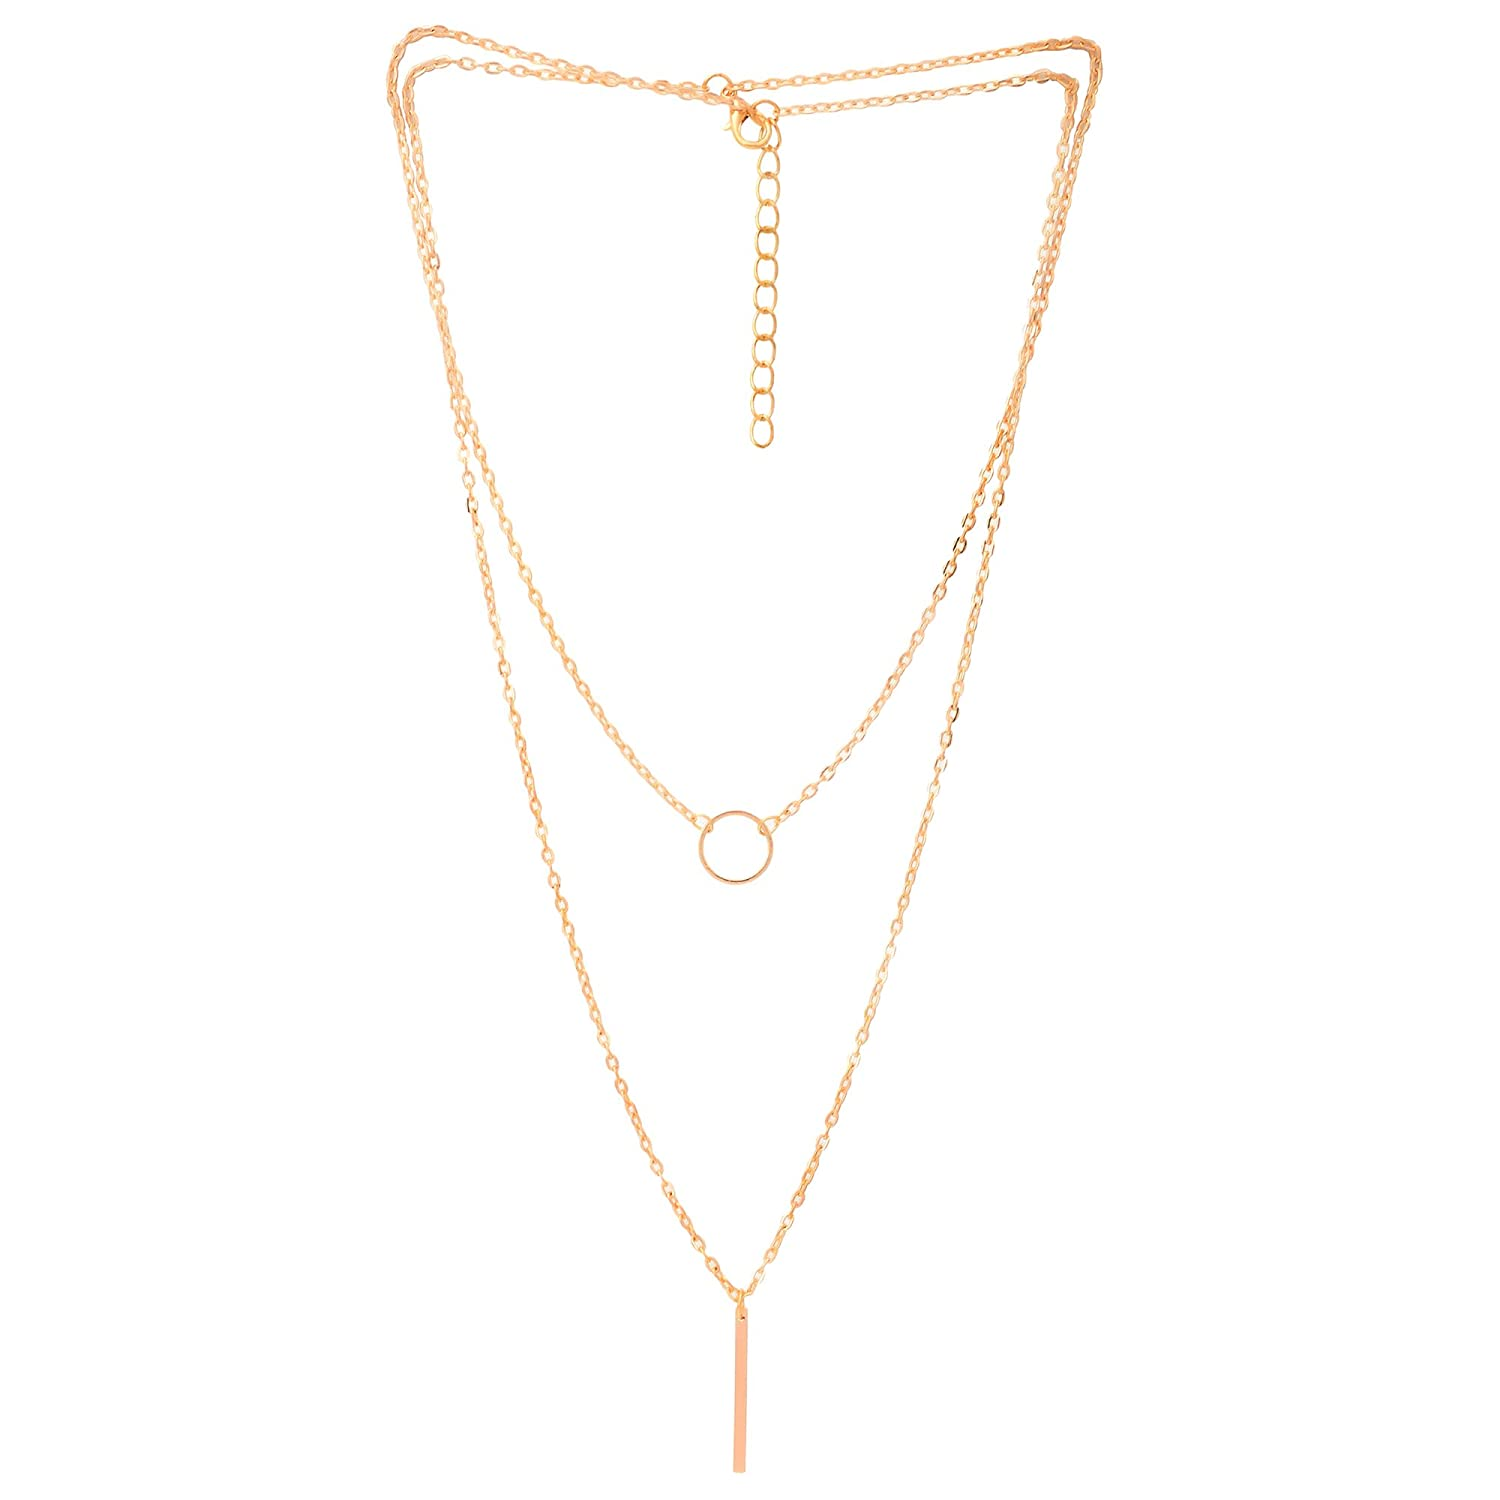 Buy aaishwarya golden layered drop bar pendant necklacechain for buy aaishwarya golden layered drop bar pendant necklacechain for women girls online at low prices in india amazon jewellery store amazon mozeypictures Gallery